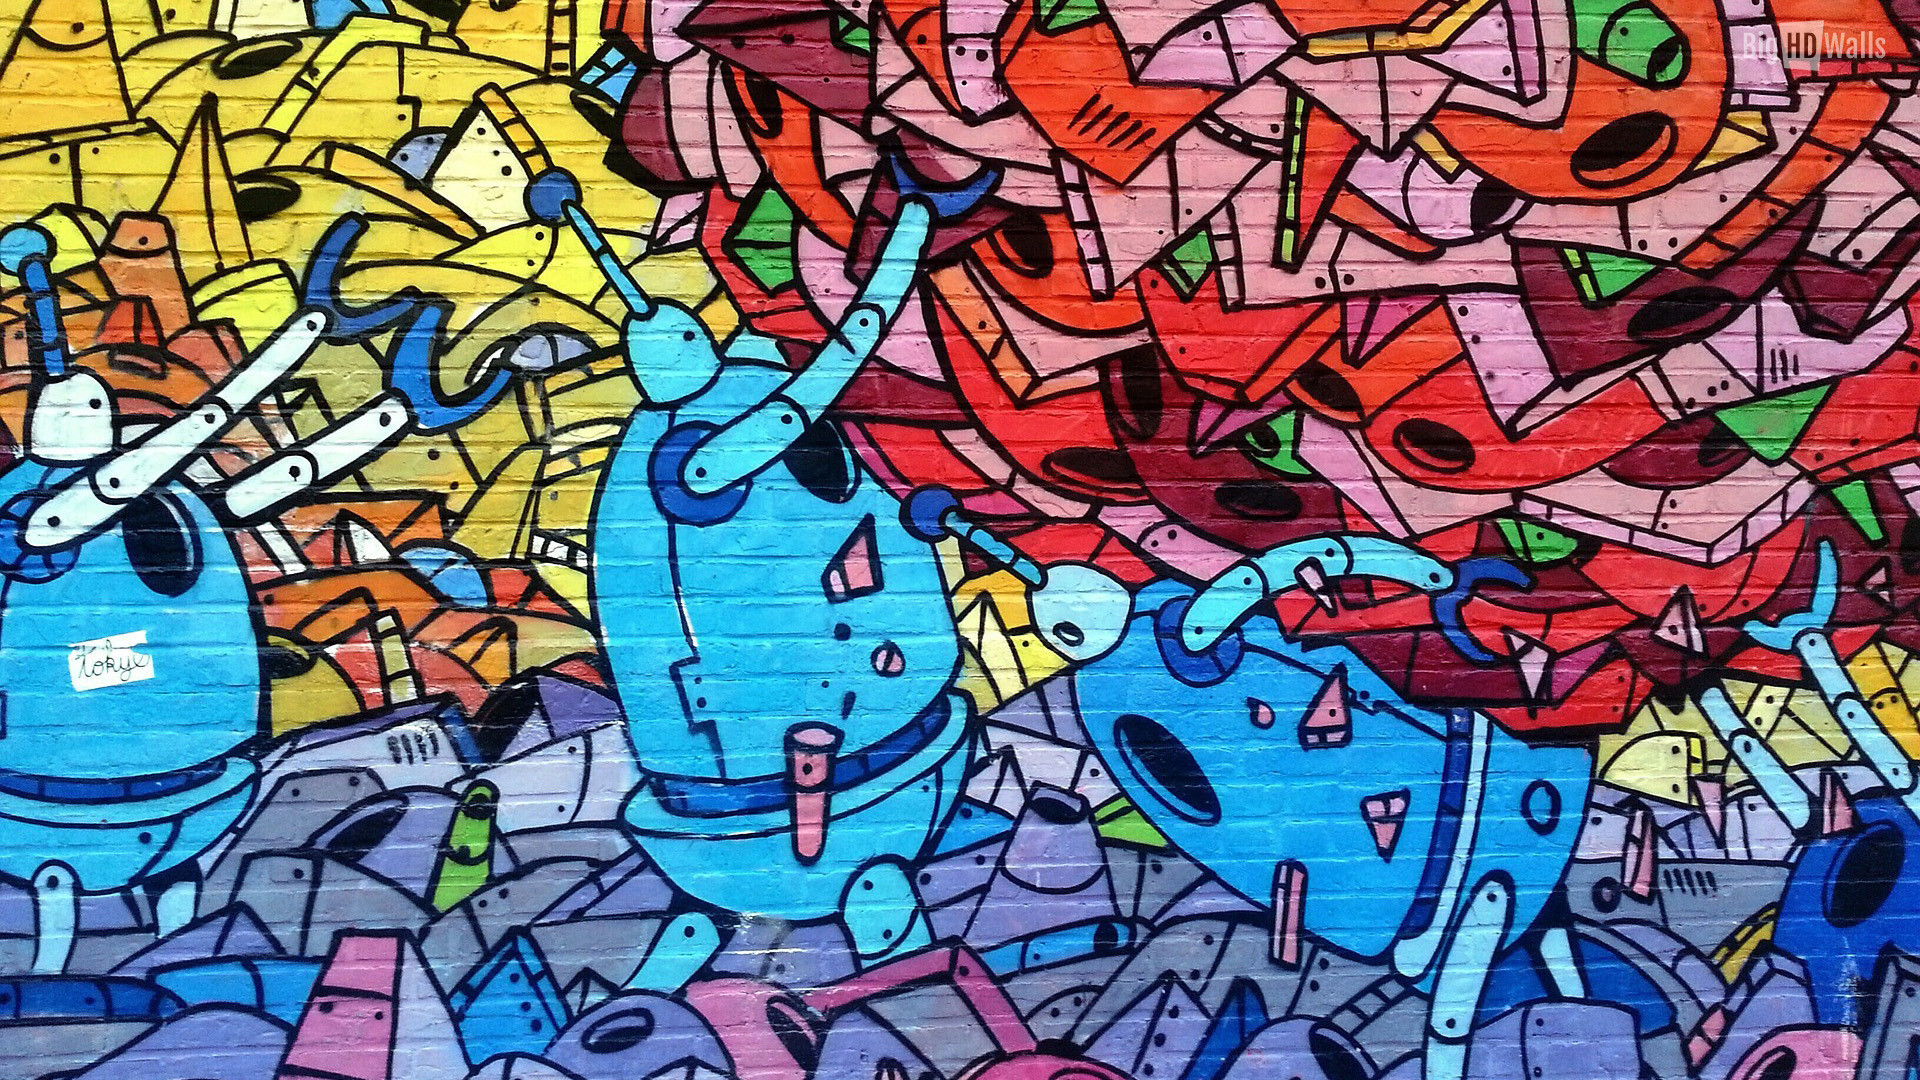 Awesome Graffiti Backgrounds 66 Images